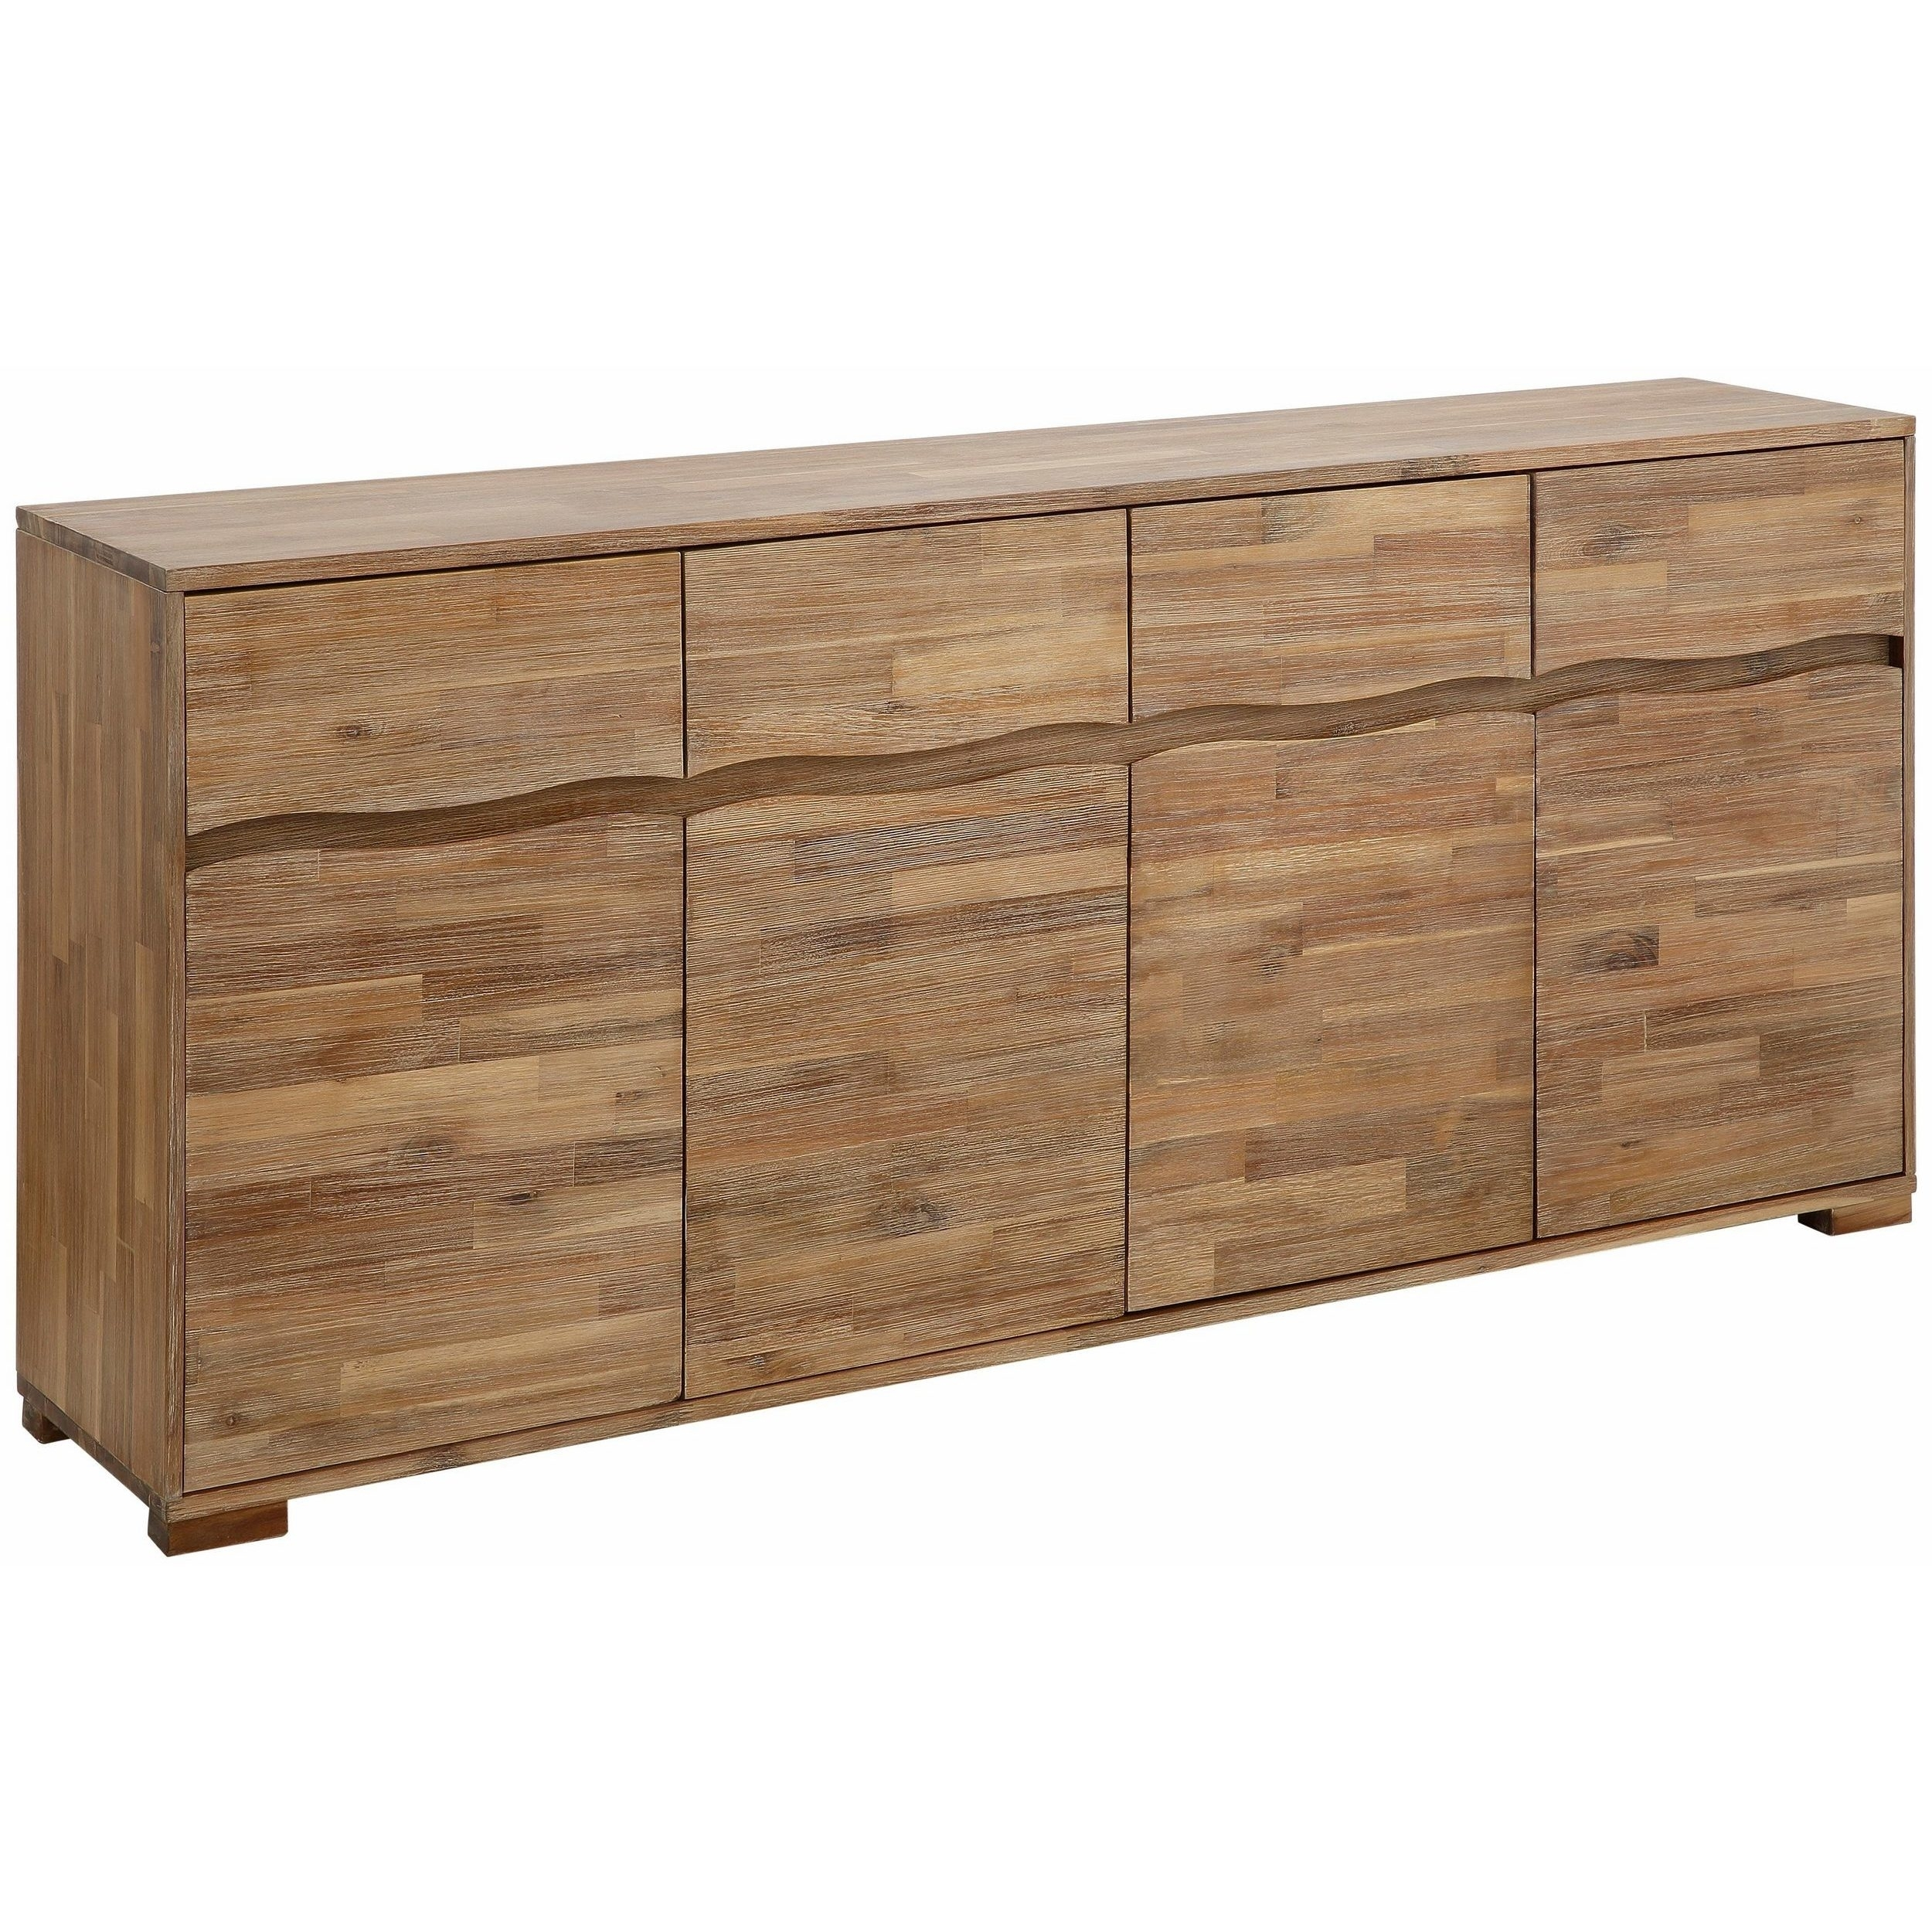 Shop Surf Sideboard With 4 Doors And 4 Drawers, Acacia Wood – On With 2017 Acacia Wood 4 Door Sideboards (#14 of 20)